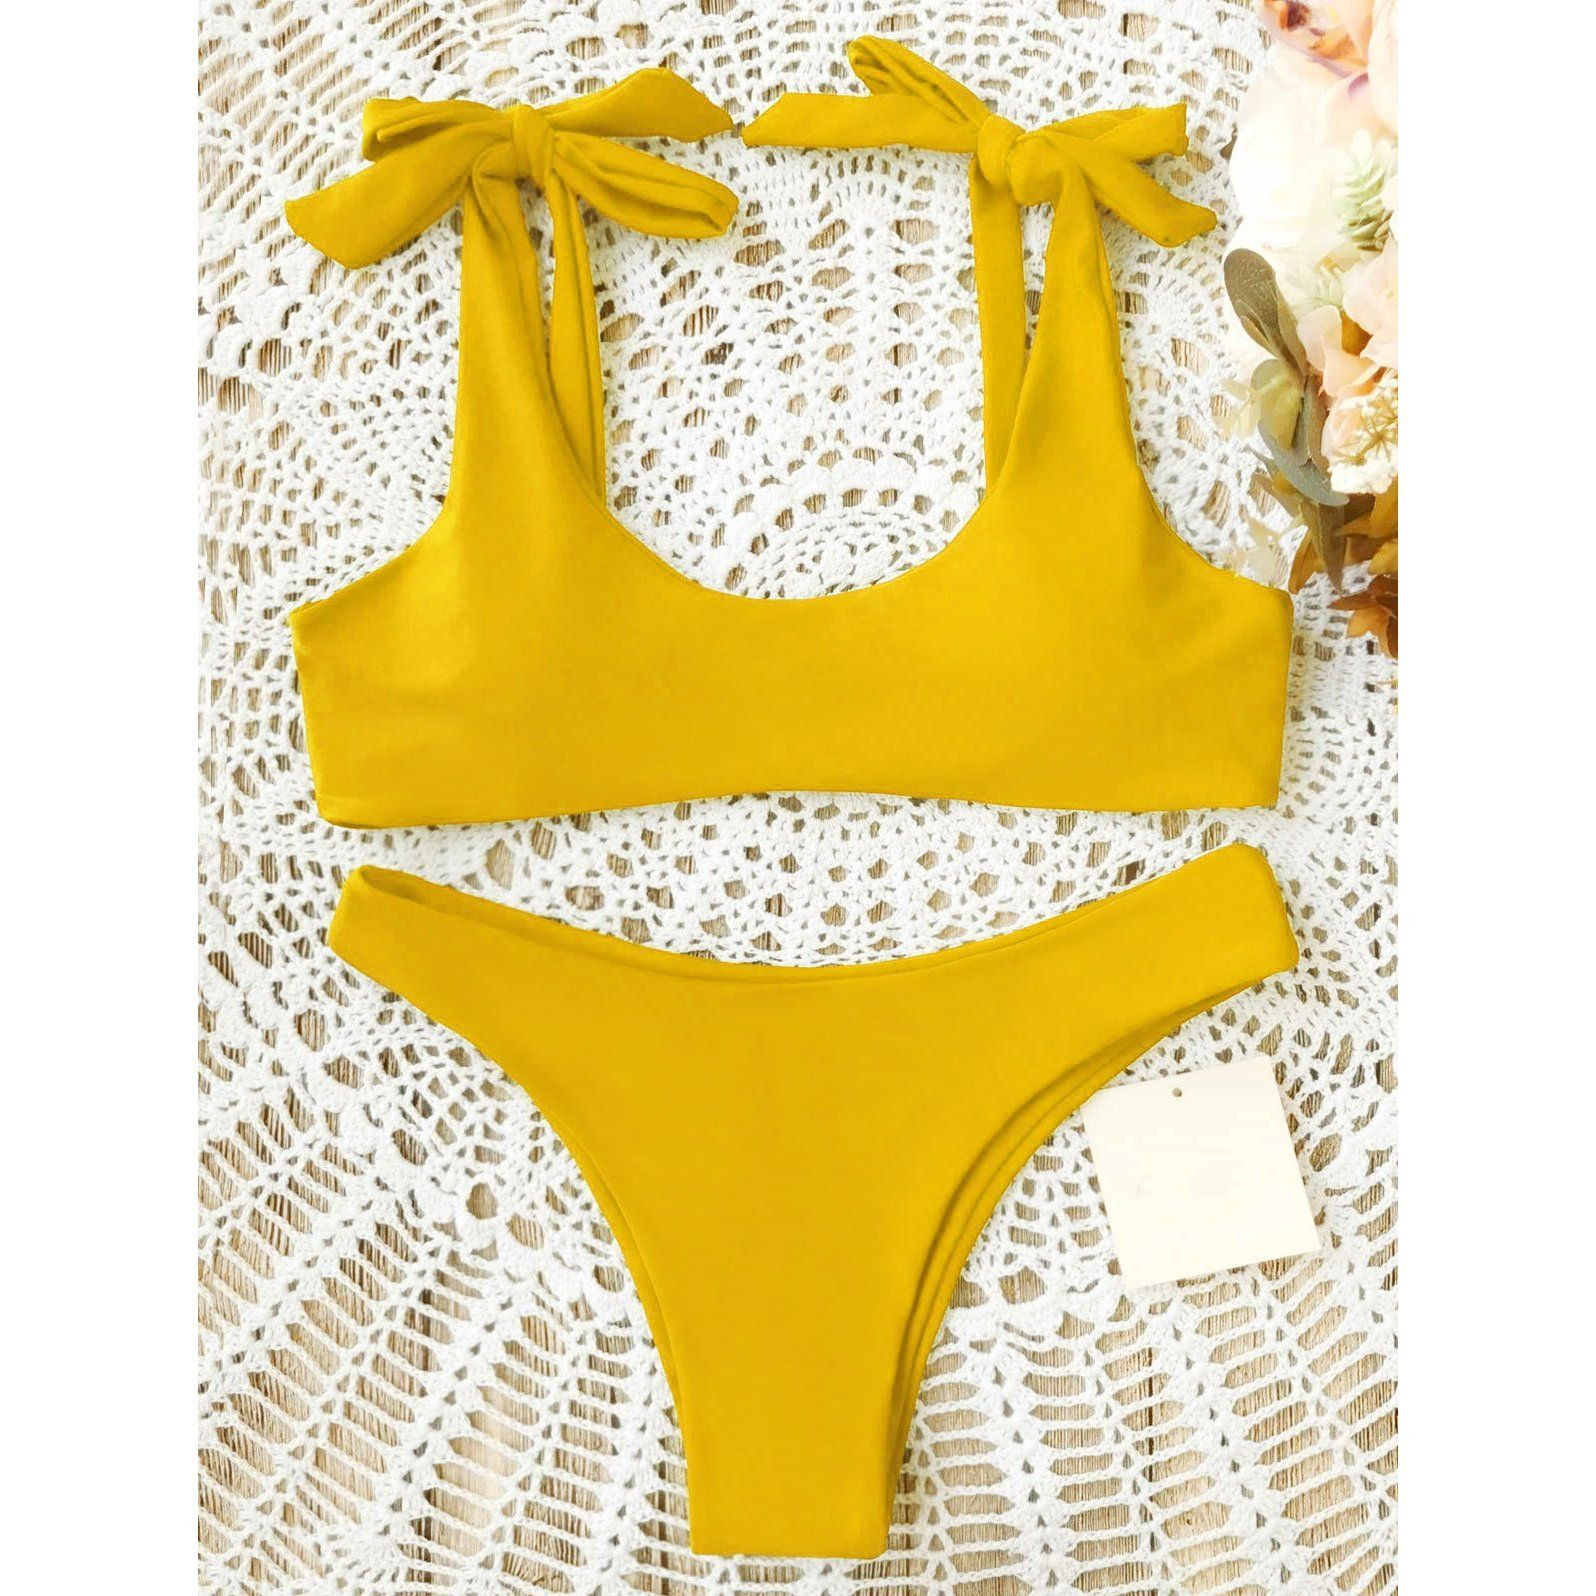 98ab51dff1 Sheinstreet Spring and Summer Sexy Pure Color Bow-Knot Bikini Swimwear